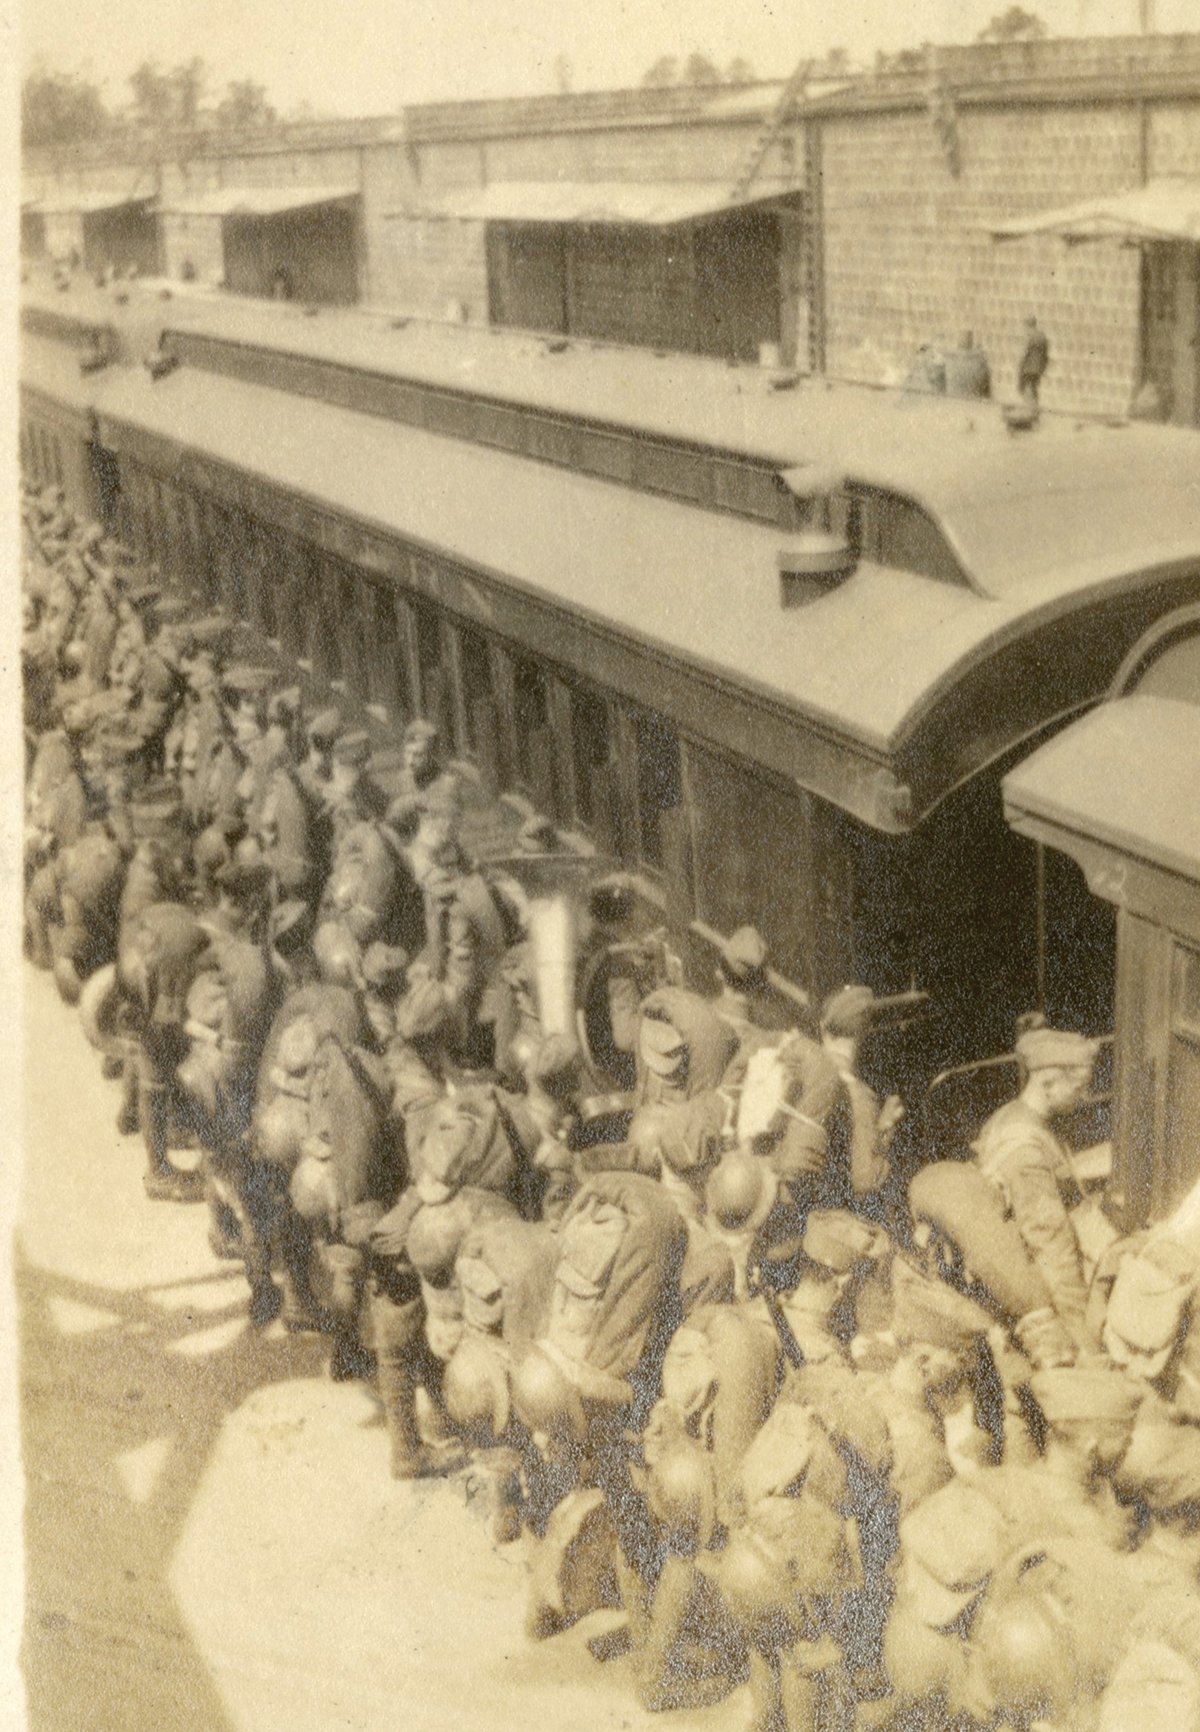 PHOTO PROVIDED BY THE SOUTH CAROLINA HISTORICAL SOCIETY  Soldiers board a train for Camp Jackson (later named Fort Jackson).  More than 26% of U.S. servicemen suffered from influenza in World War I.